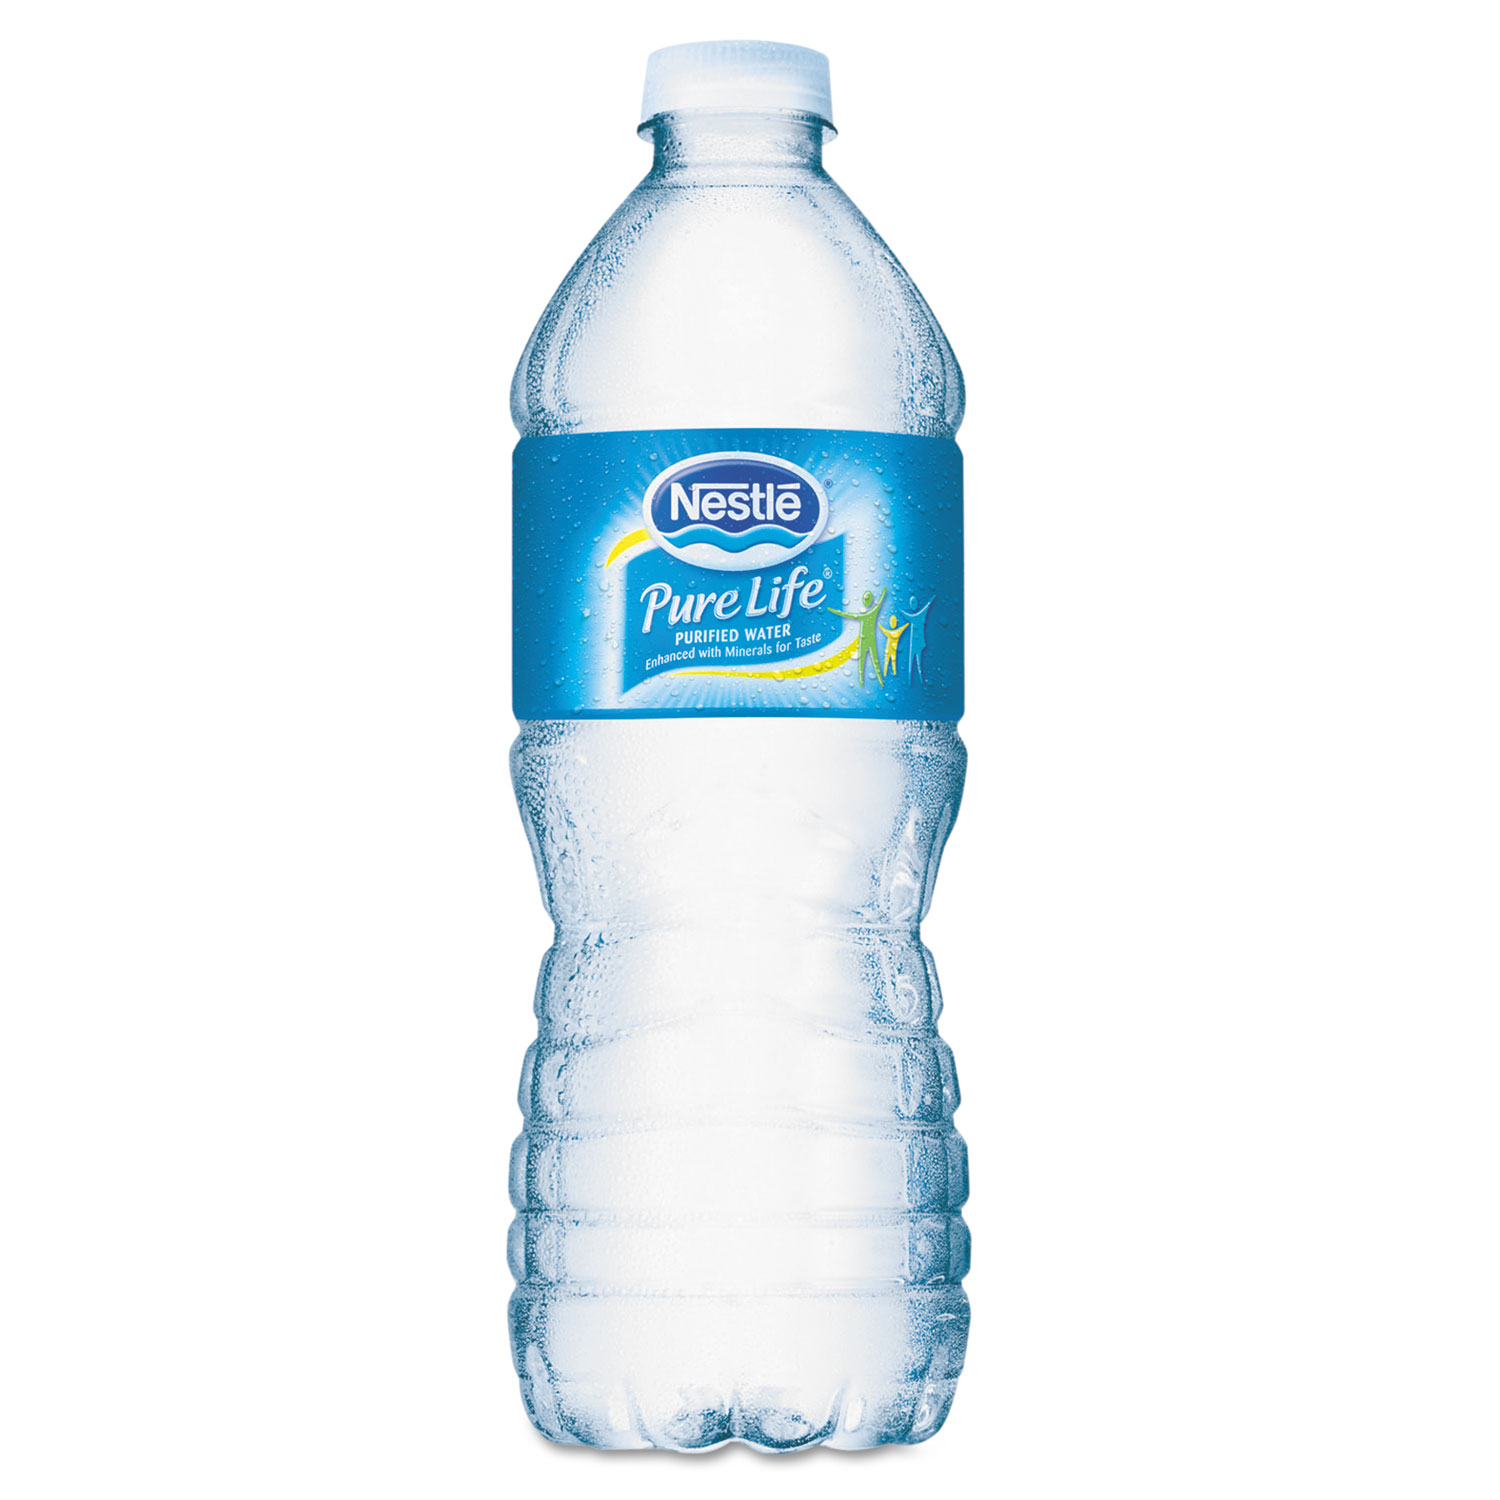 Nestlé Waters North America, Inc. is a business unit of Nestlé Waters that produces and distributes numerous brands of bottled water across North America.